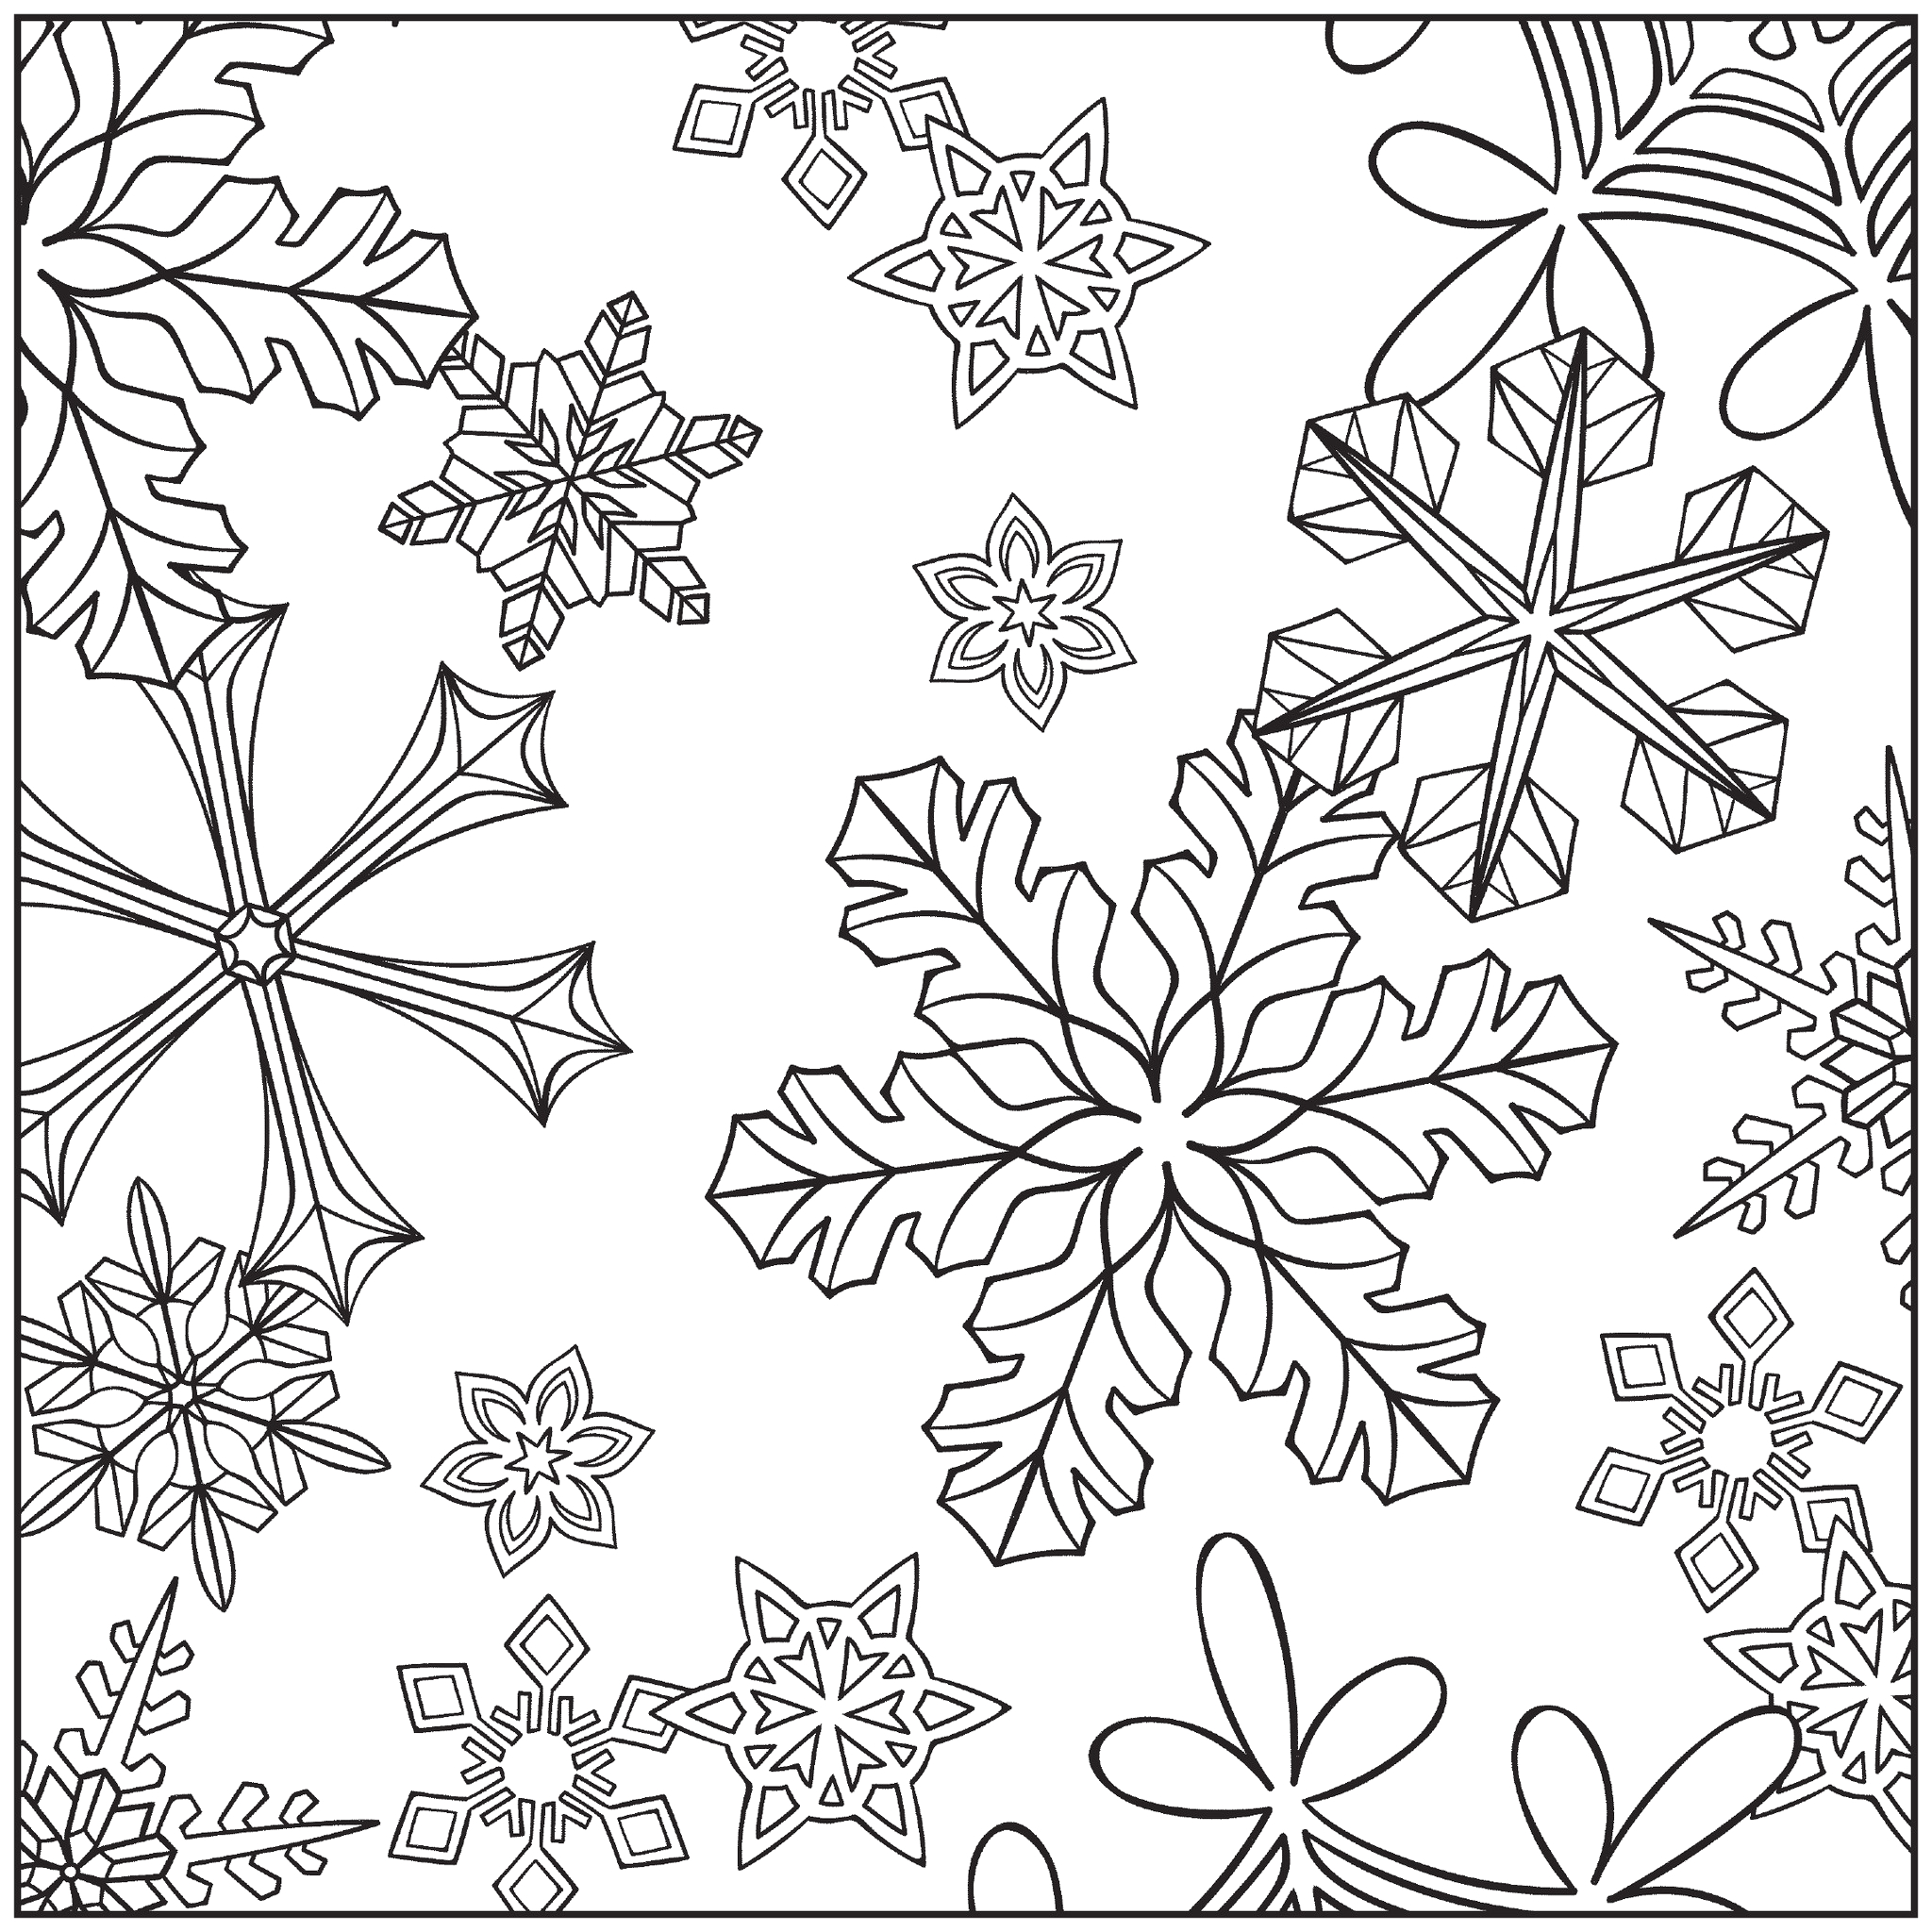 Free Printable Winter Coloring Pages for Adults Printable Winter Wonderland Coloring Pages at Getcolorings